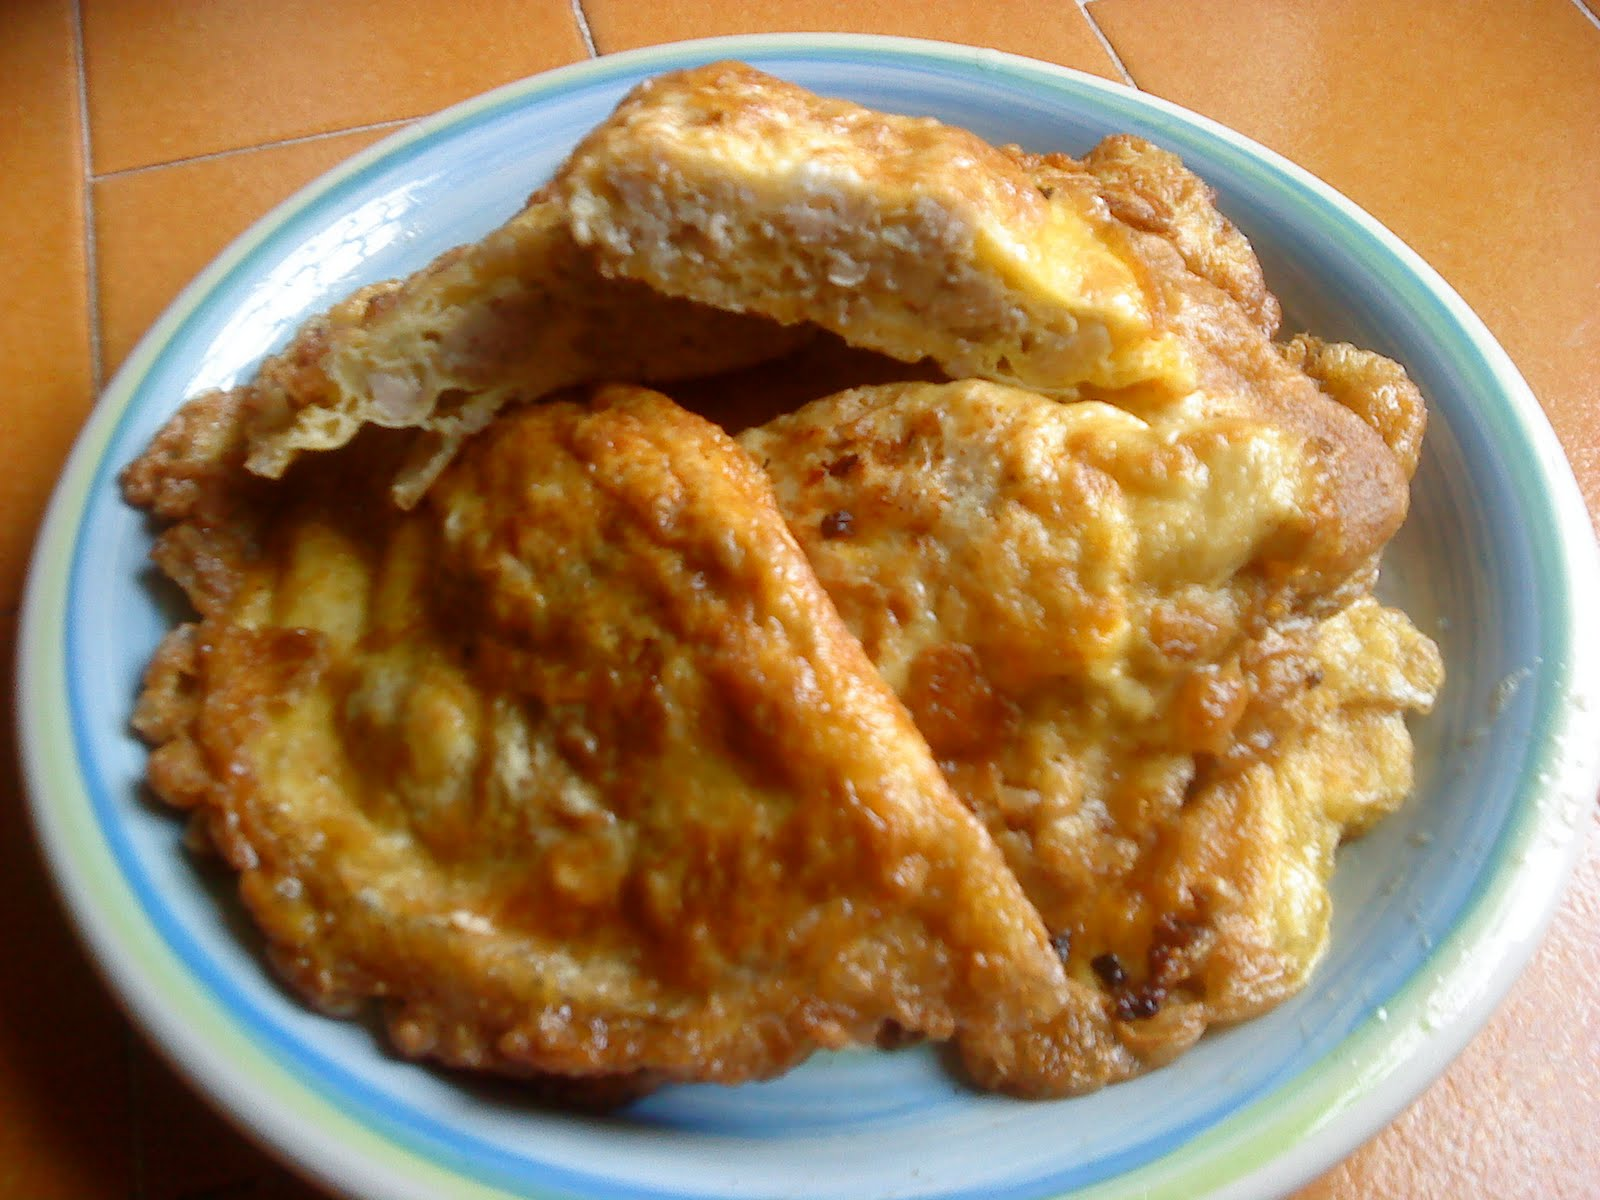 The recipe for mincemeat in an omelette